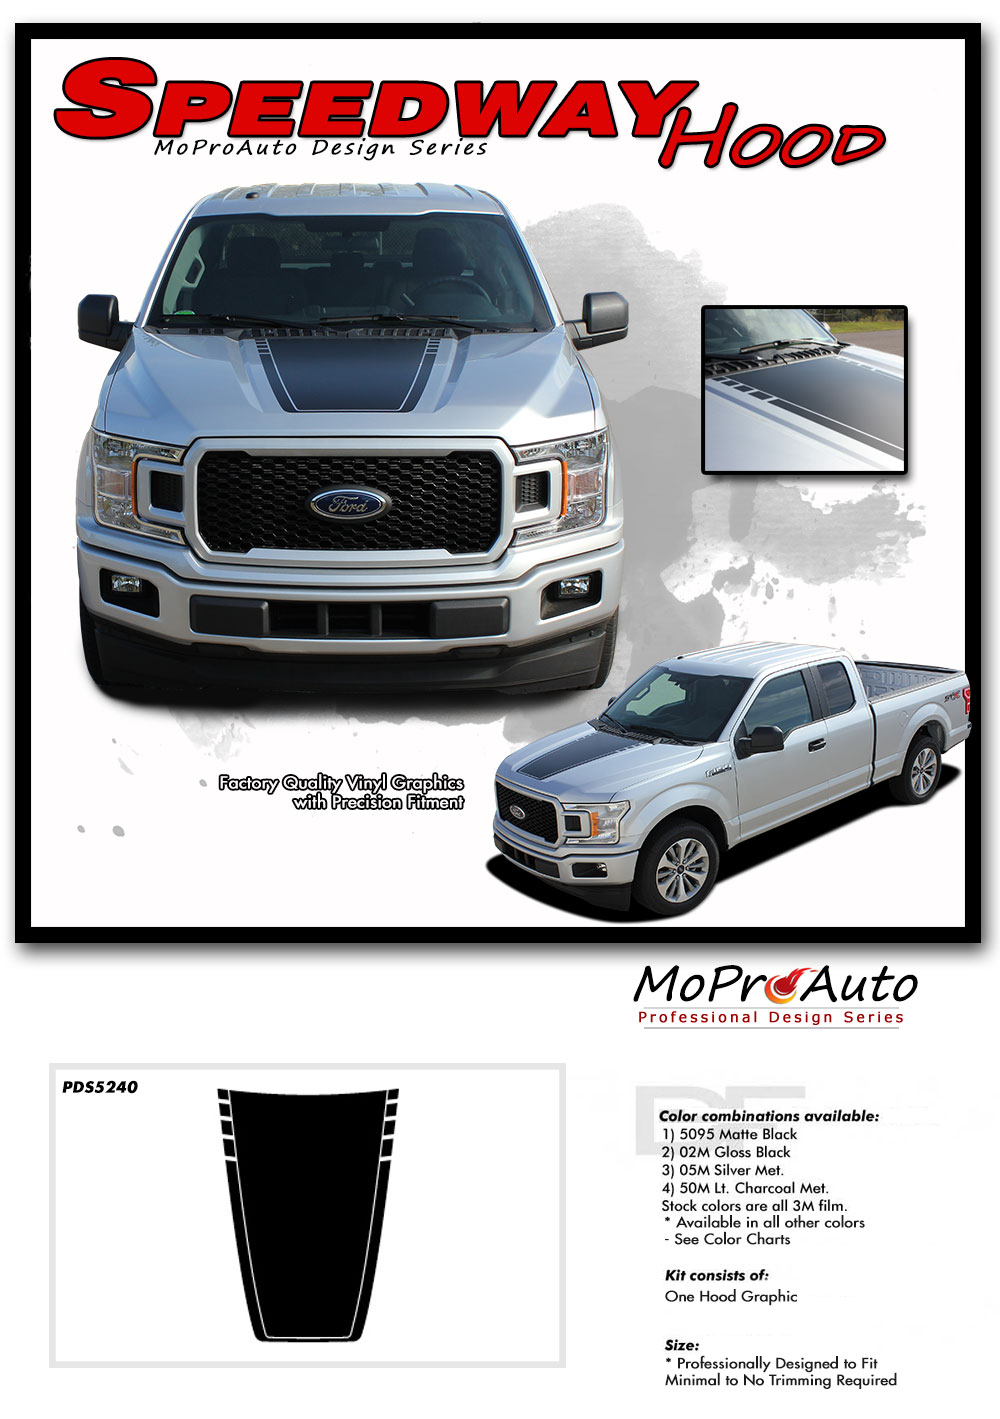 2015-2018 SPEEDWAY HOOD Solid Ford F-Series F-150 Appearance Package Vinyl Graphics and Decals Kit by MoProAuto Pro Design Series